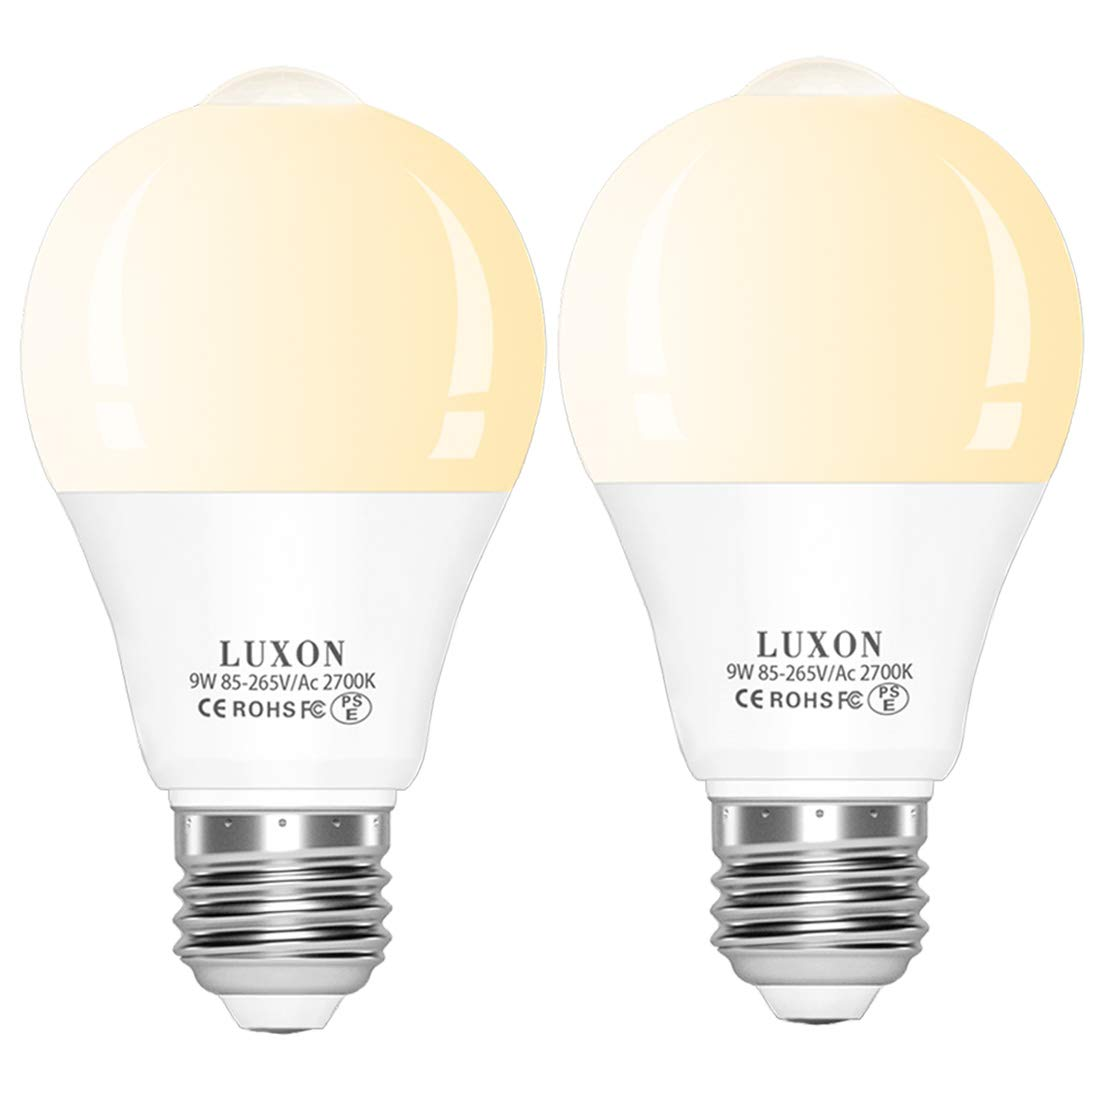 Motion Sensor Light Bulb Dusk to Dawn Built-in PIR Motion Detector Bulbs 9W 2700K Warm White Auto On/Off E26 Base for Stair Porch Garage 2-Pack by LUXON